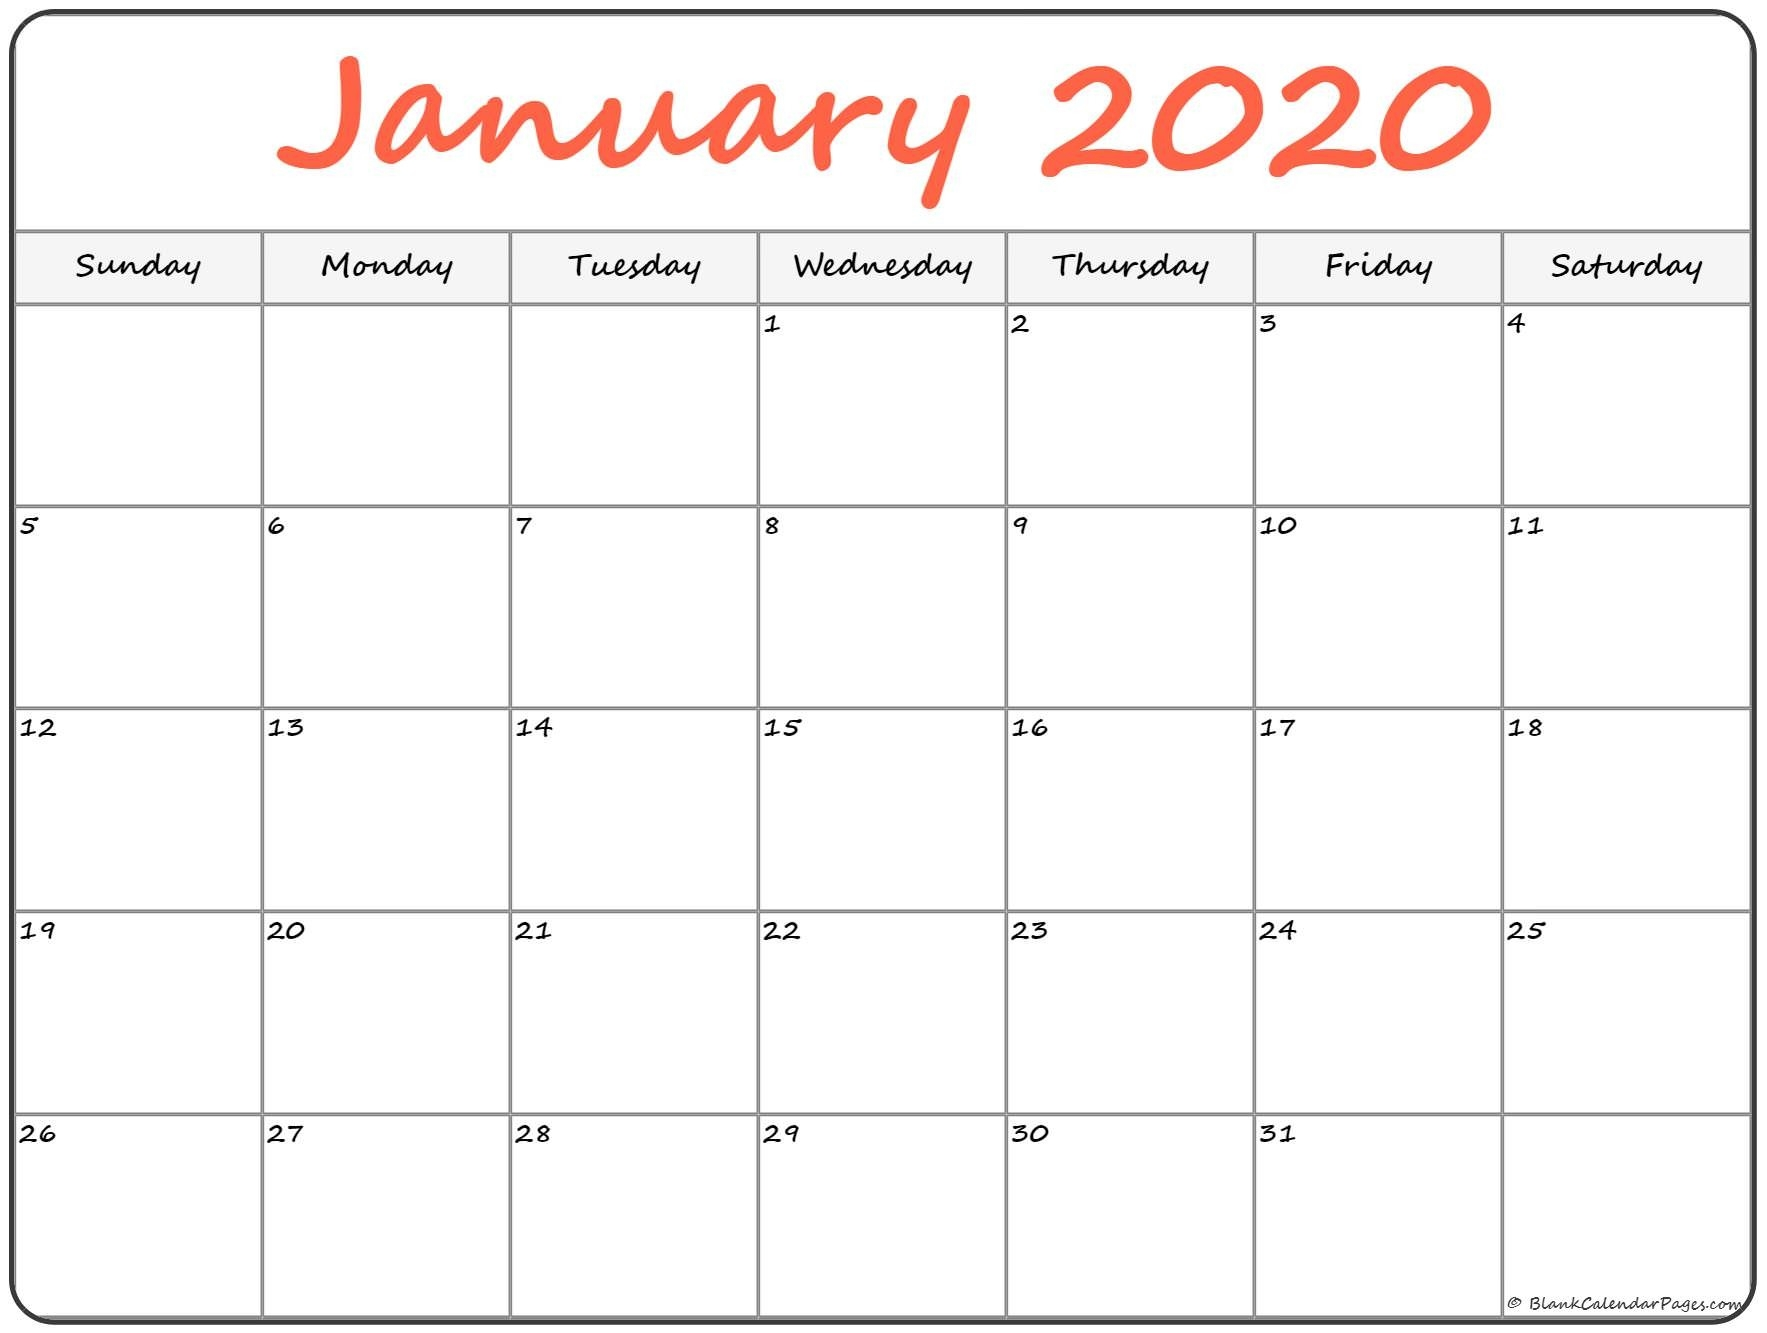 January 2020 Calendar | Free Printable Monthly Calendars-Show January 2020 Calendar